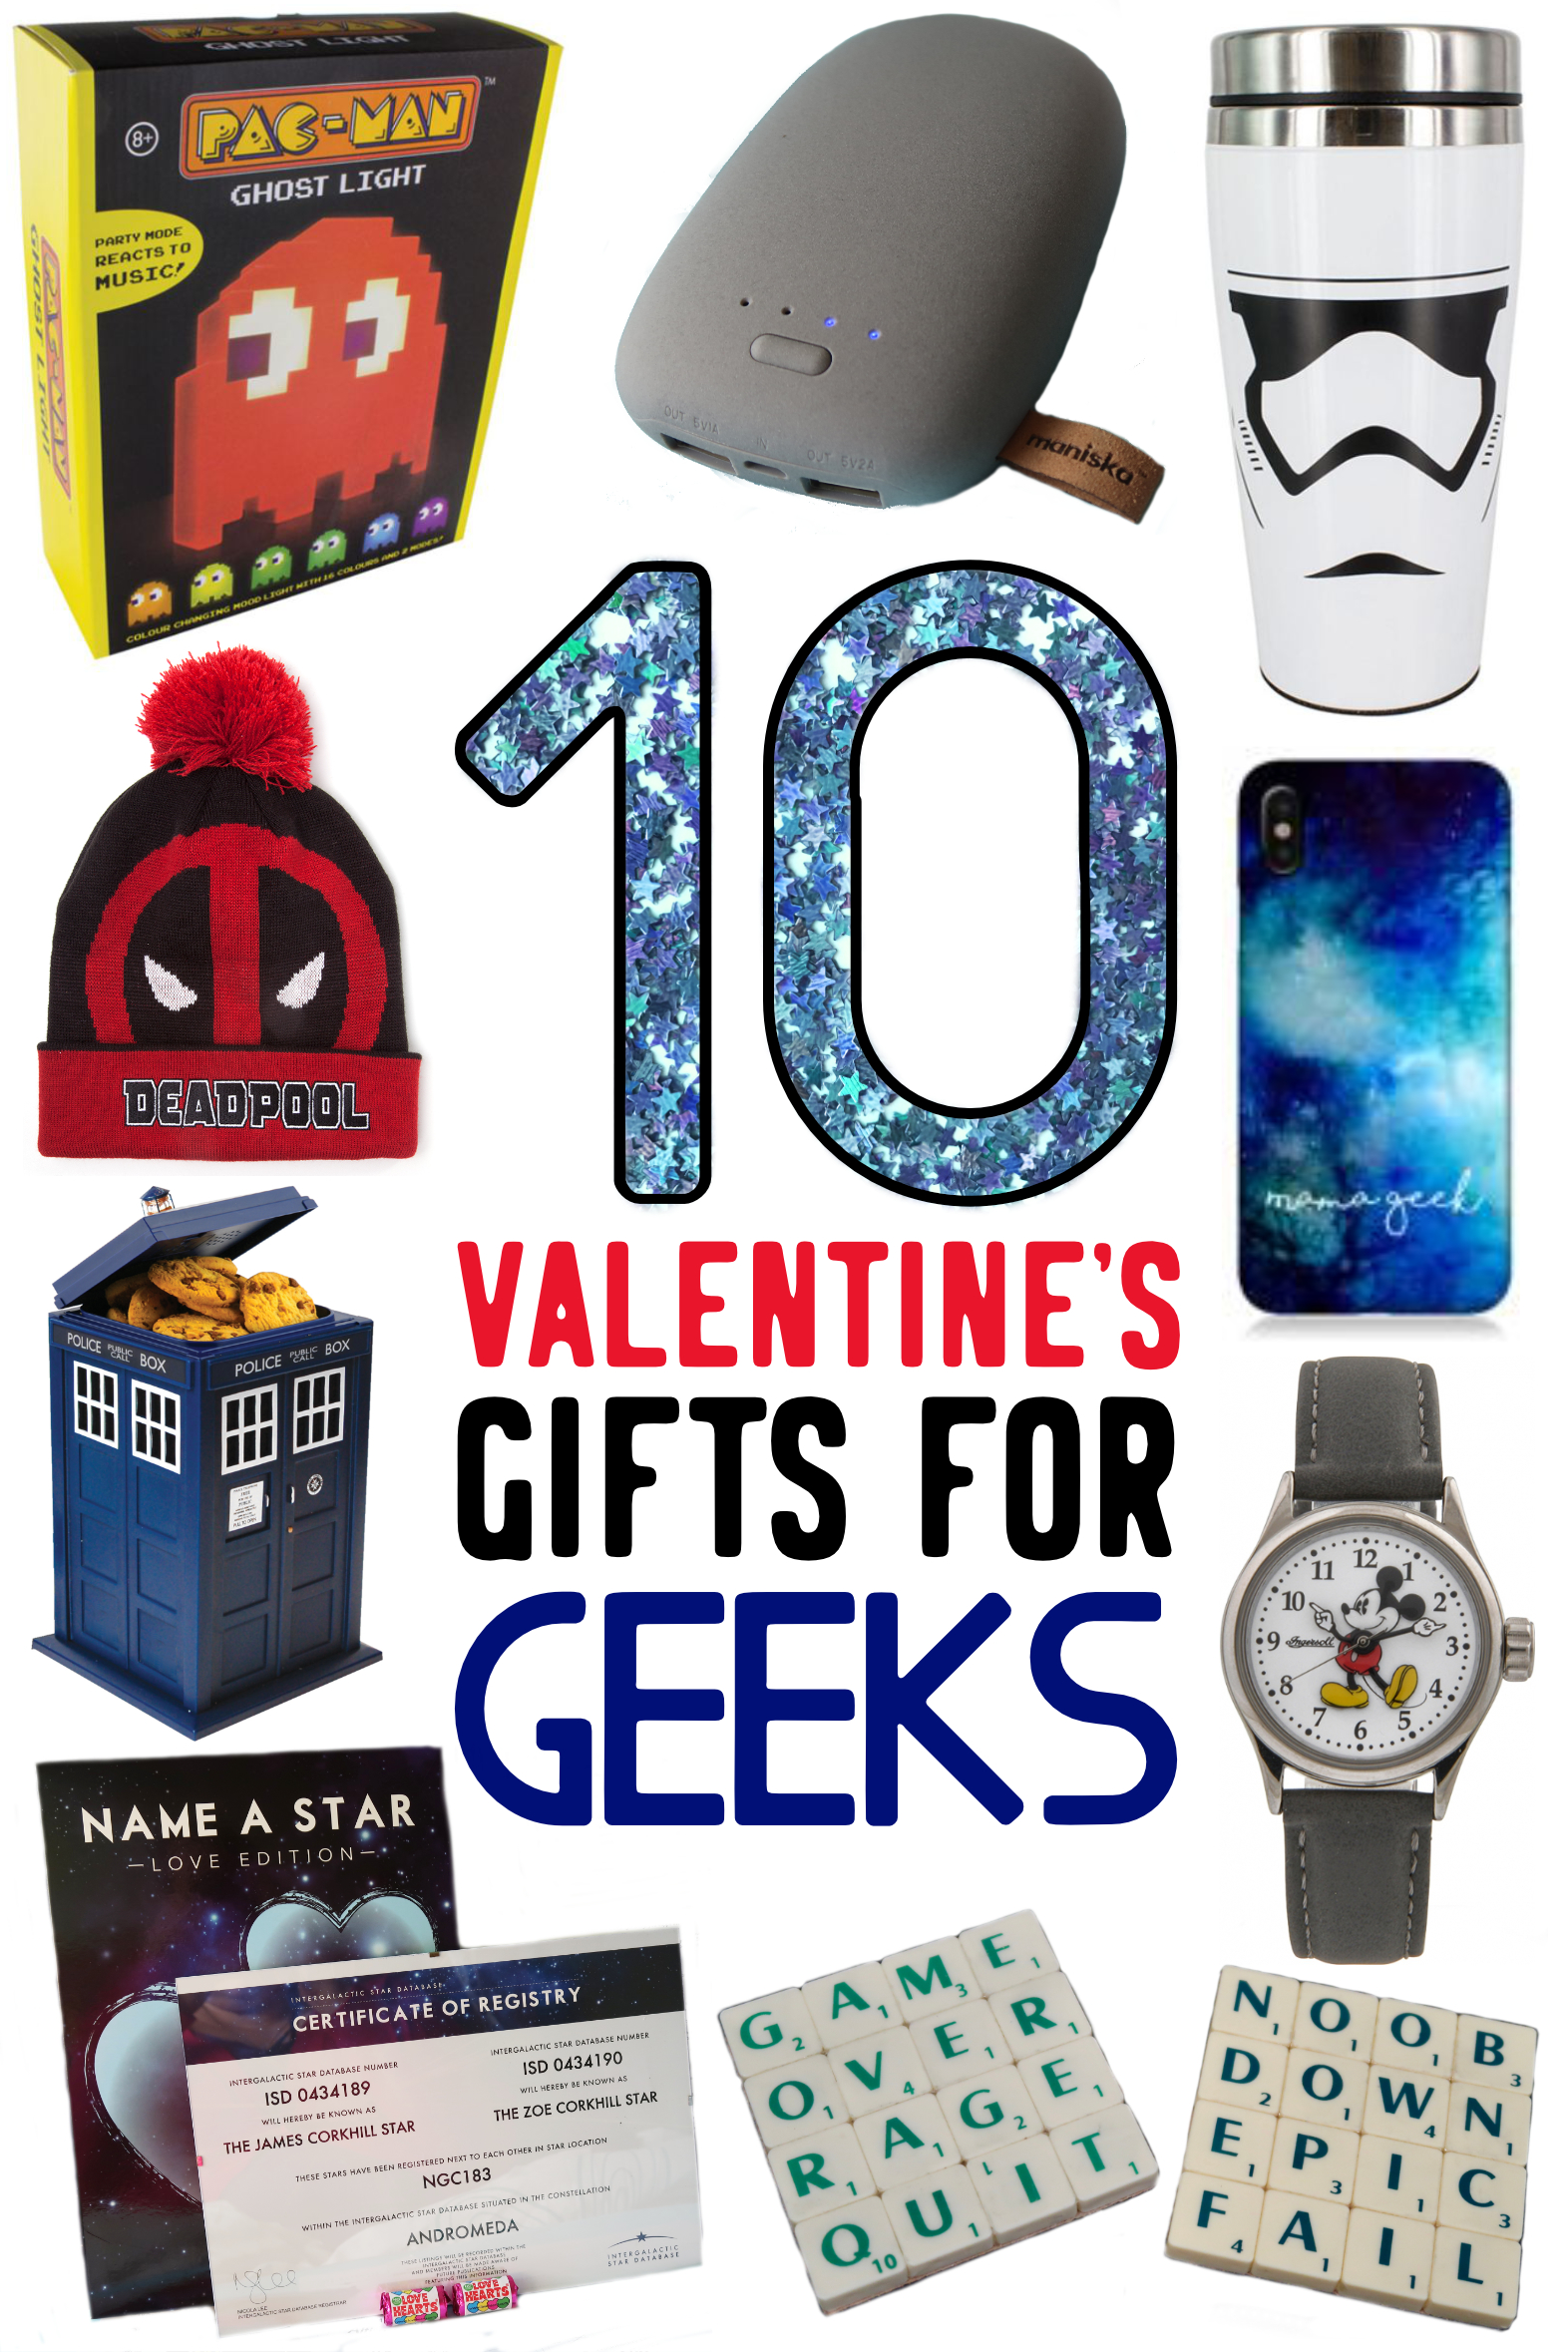 10 Valentine's Gifts for Geeks - Geeky Gift Guide